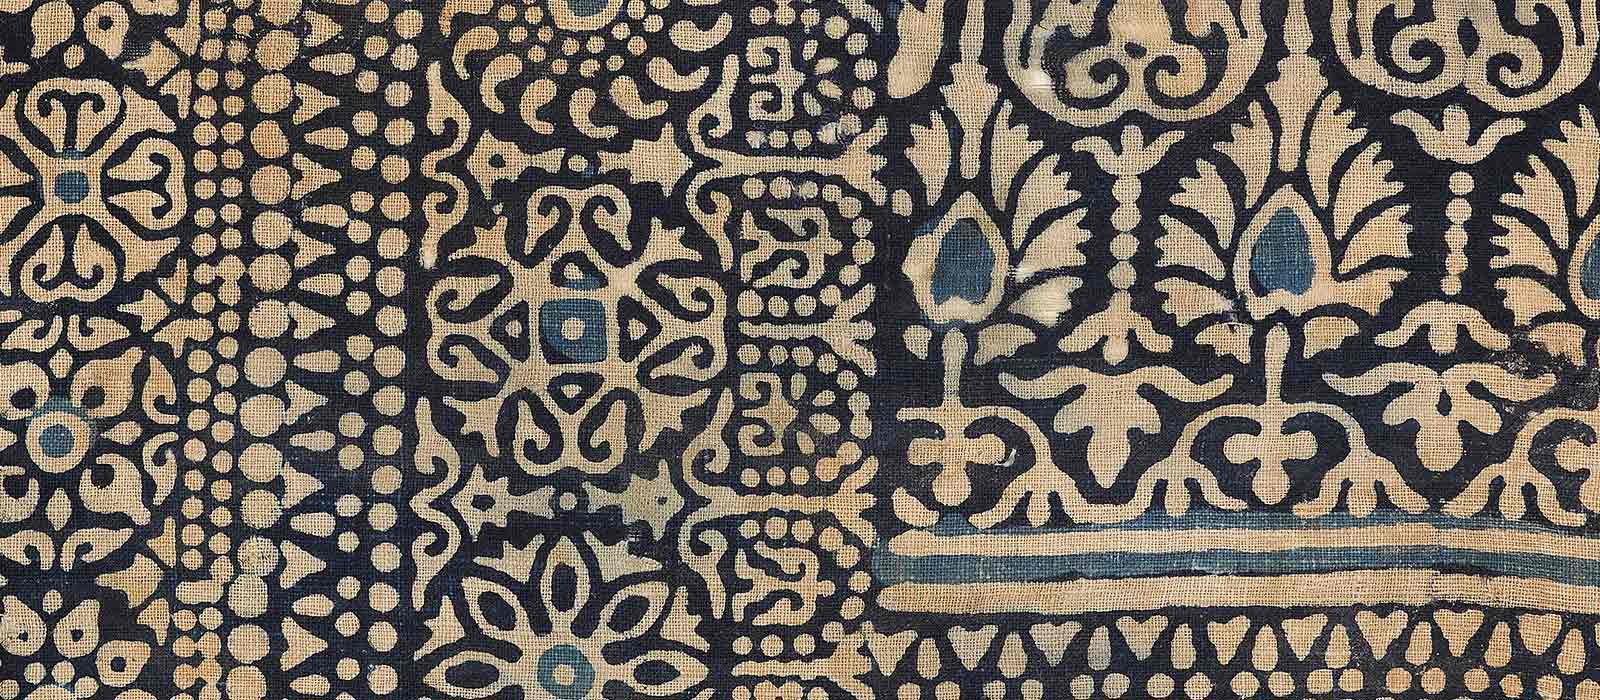 A black and blue block-printed Gujarati cotton textile fragment from the Ashmolean Museum's collections